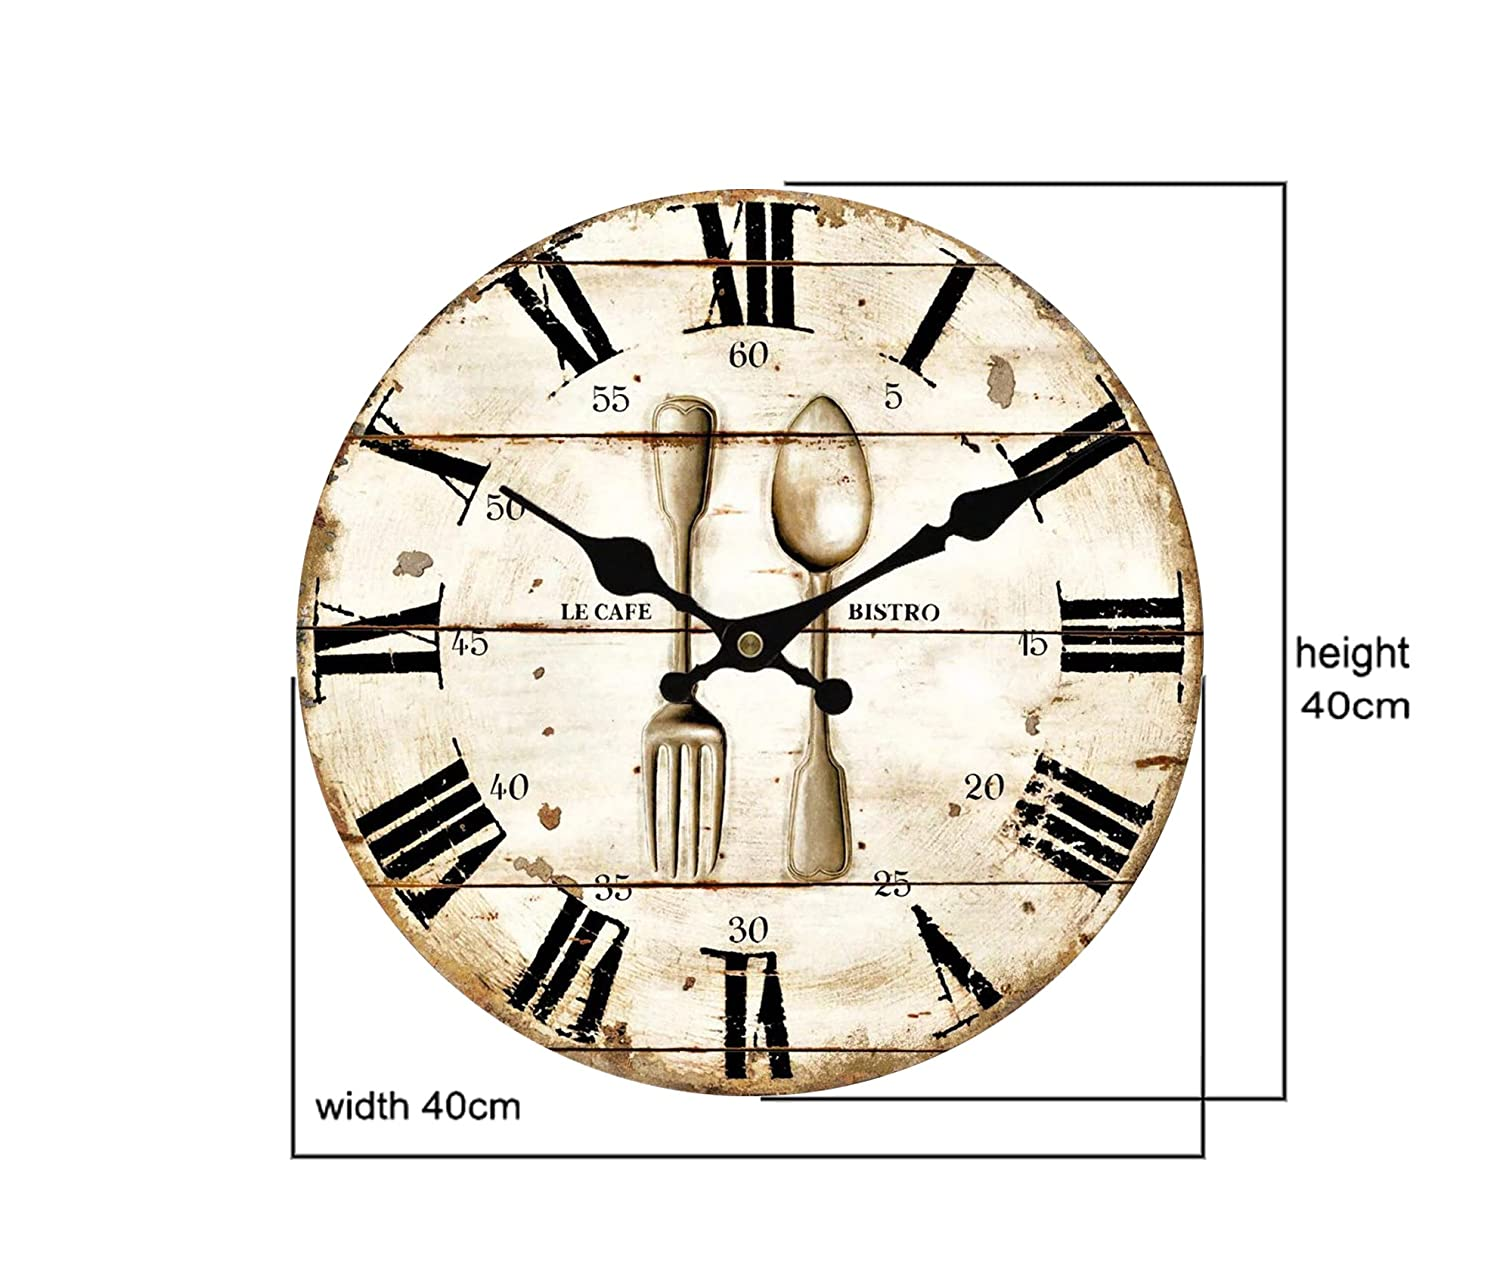 Amazon.com: Upuptop Vintage Retro Style Spoon Fork Bistro Home Kitchen Decorative Wooden Round Wall Clock Restaurant 16inch: Kitchen & Dining